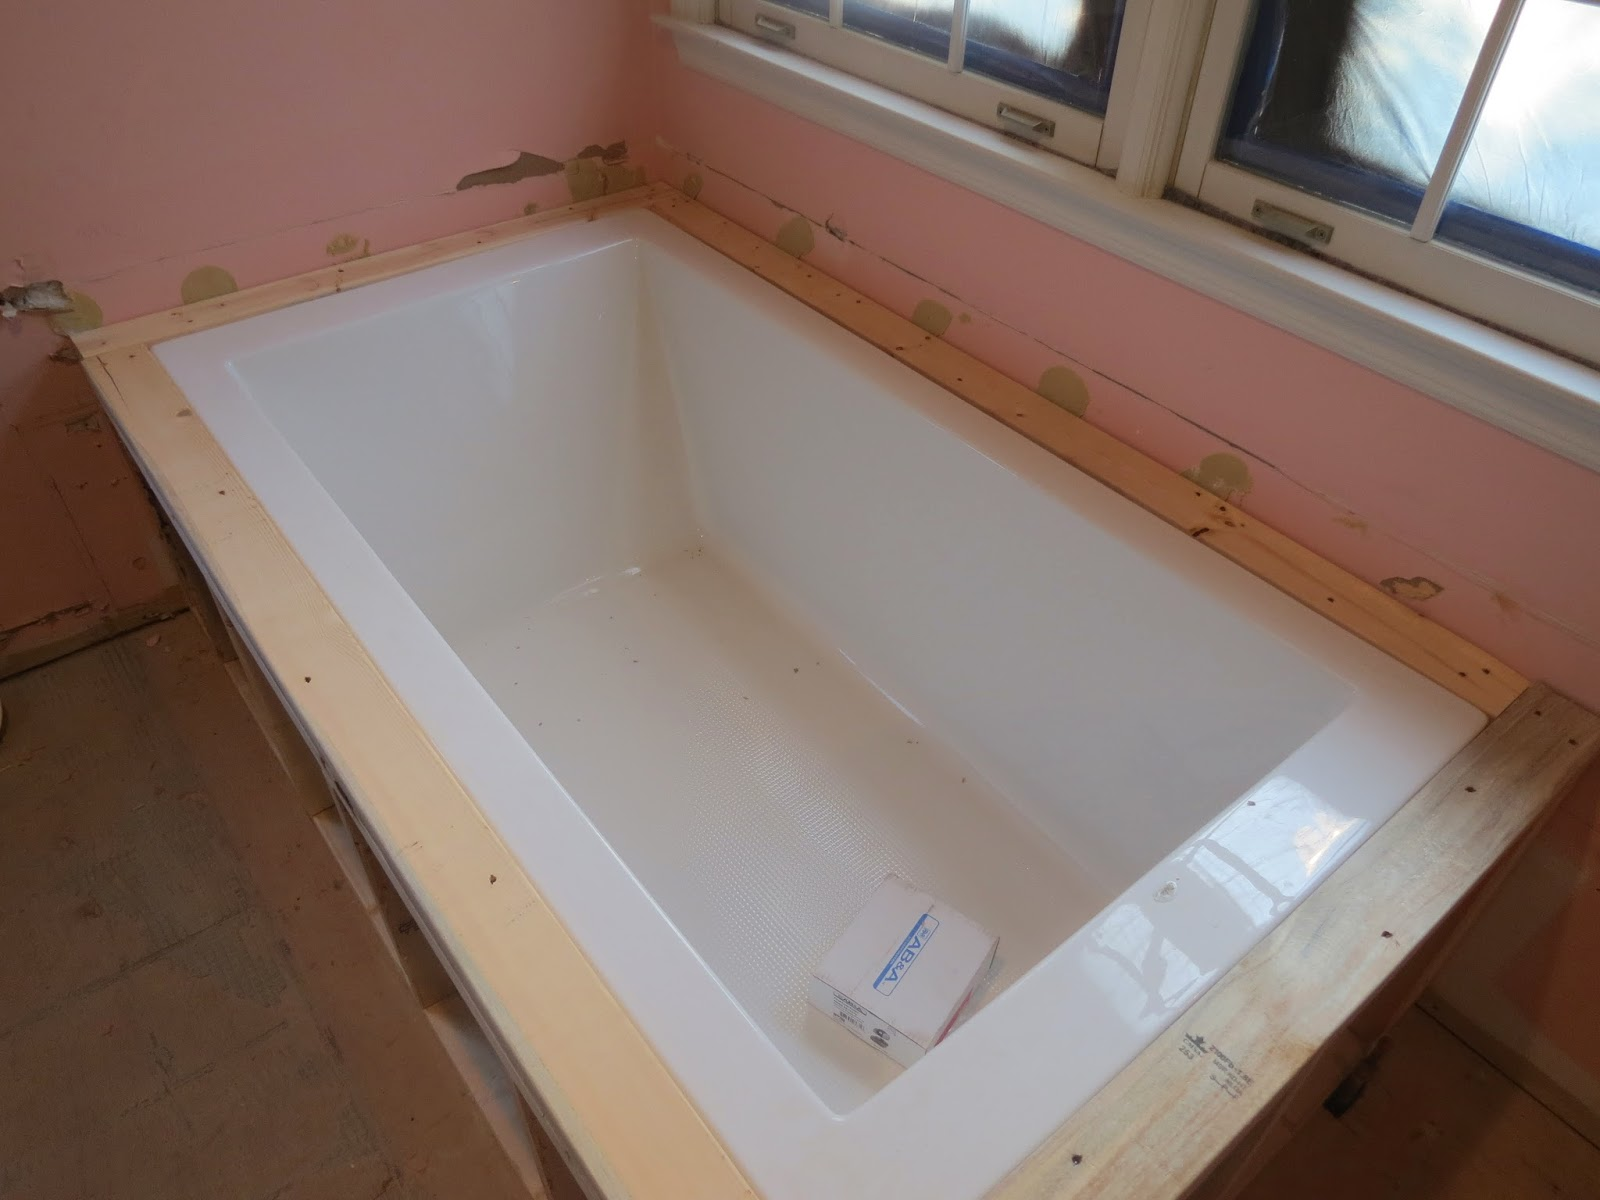 Framing a Tub Surround - Bing images